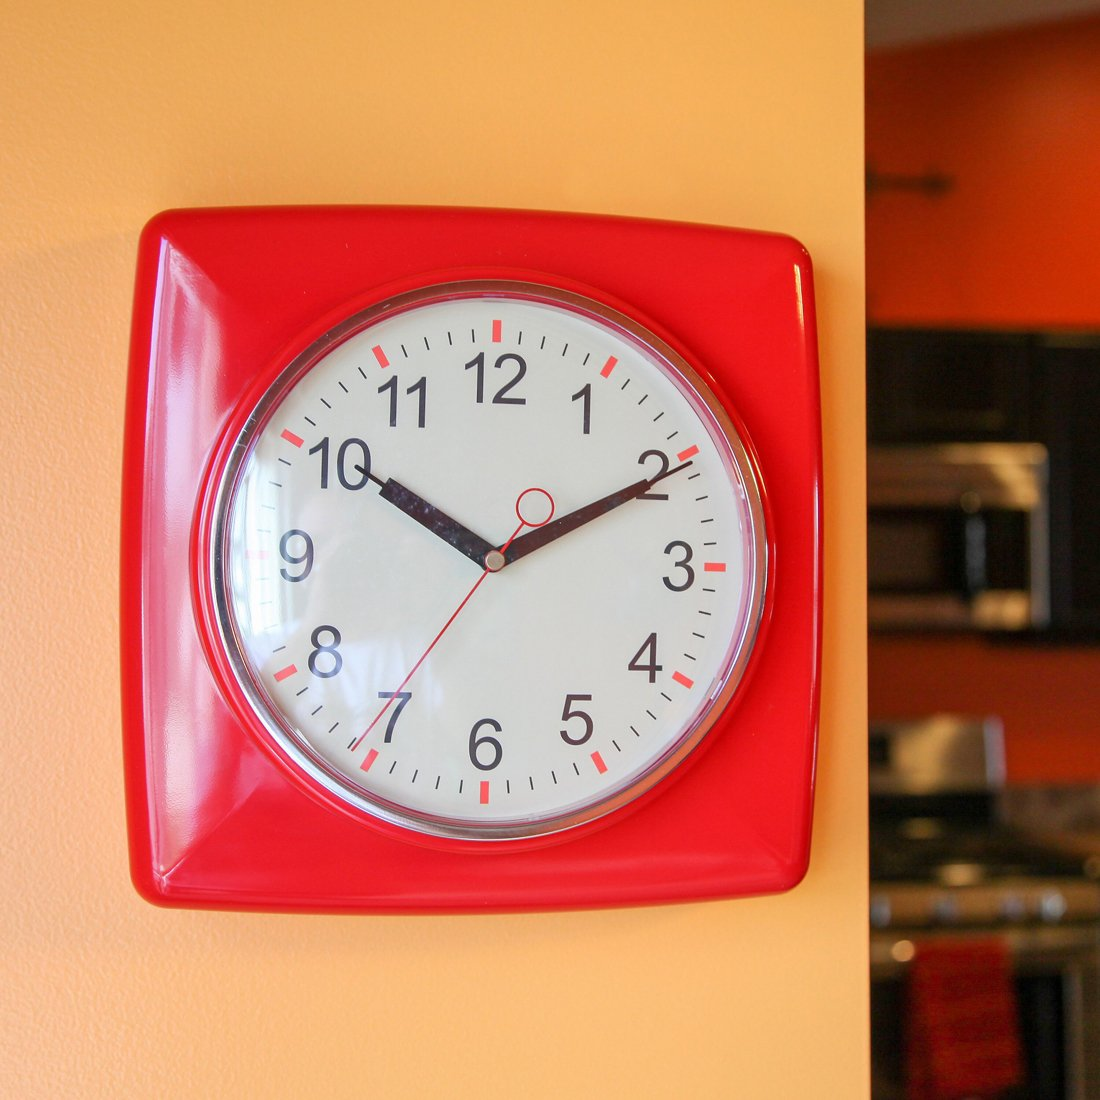 Lily's Home Square Retro Kitchen Wall Clock, Large Dial Quartz Timepiece, Red, 11